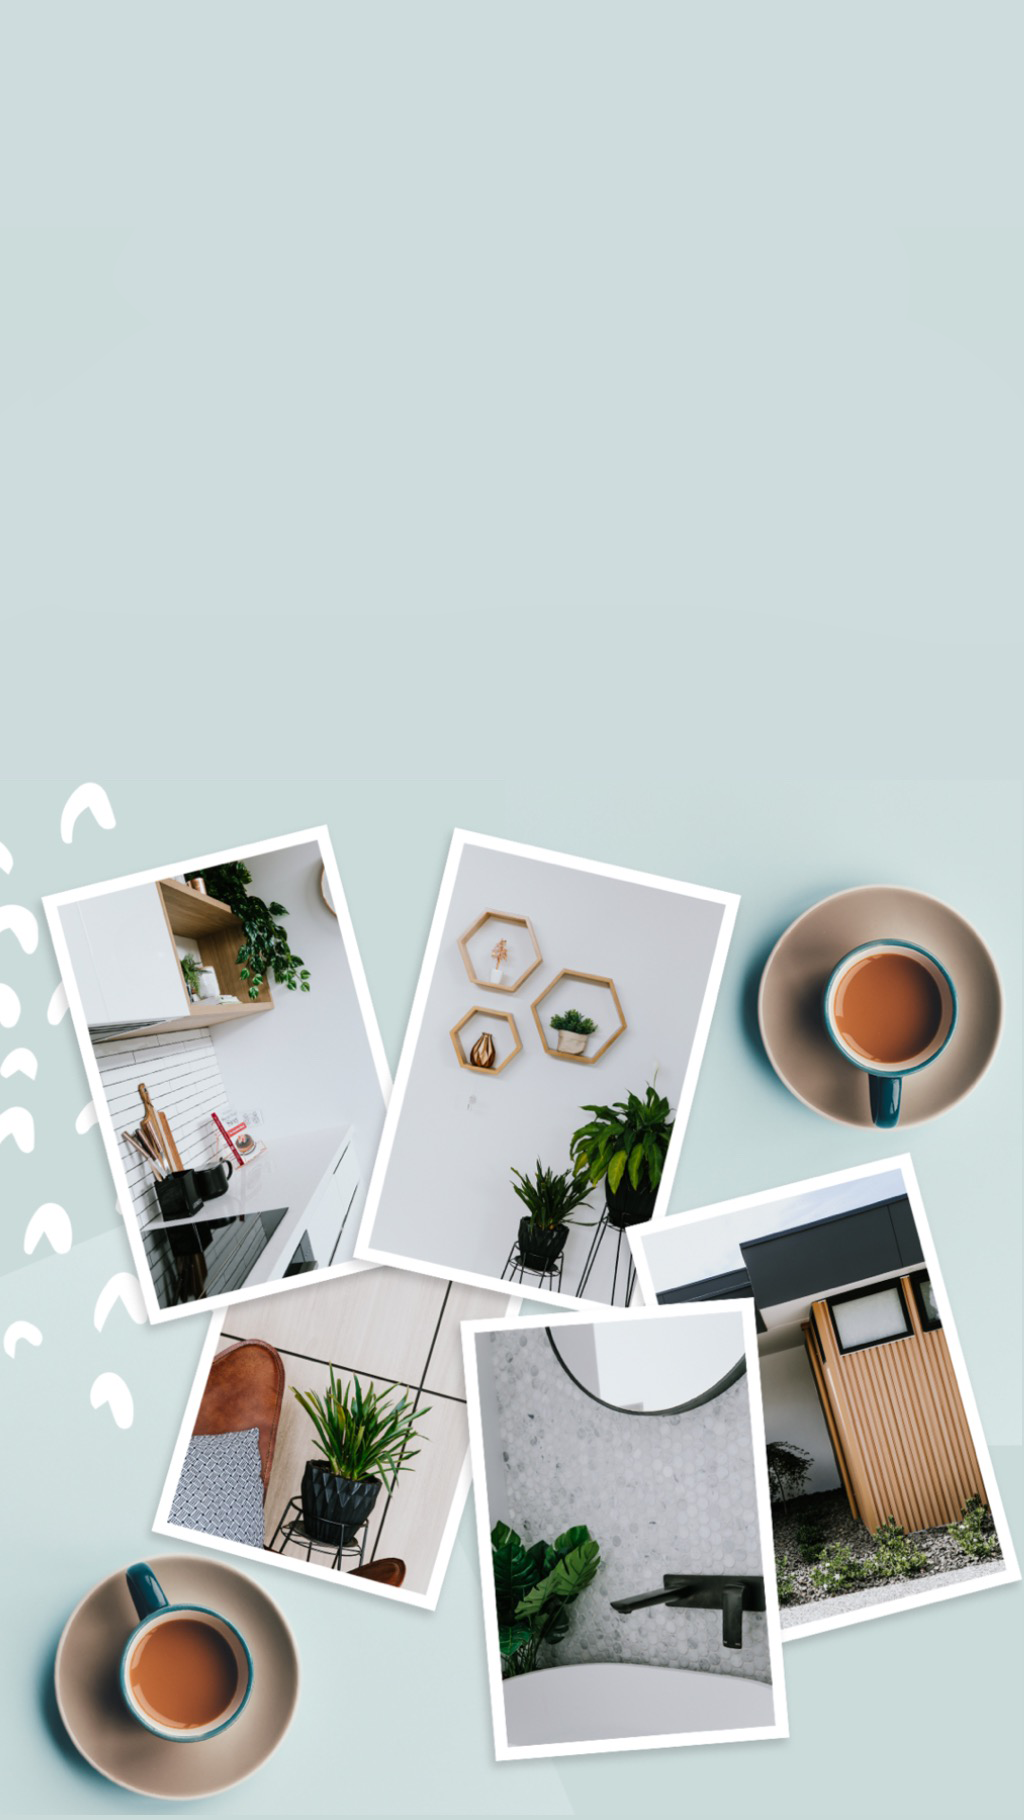 5 Expert Tips For Curating Content for A Craveable Instagram Feed - www.craveablesocial.com 2.png